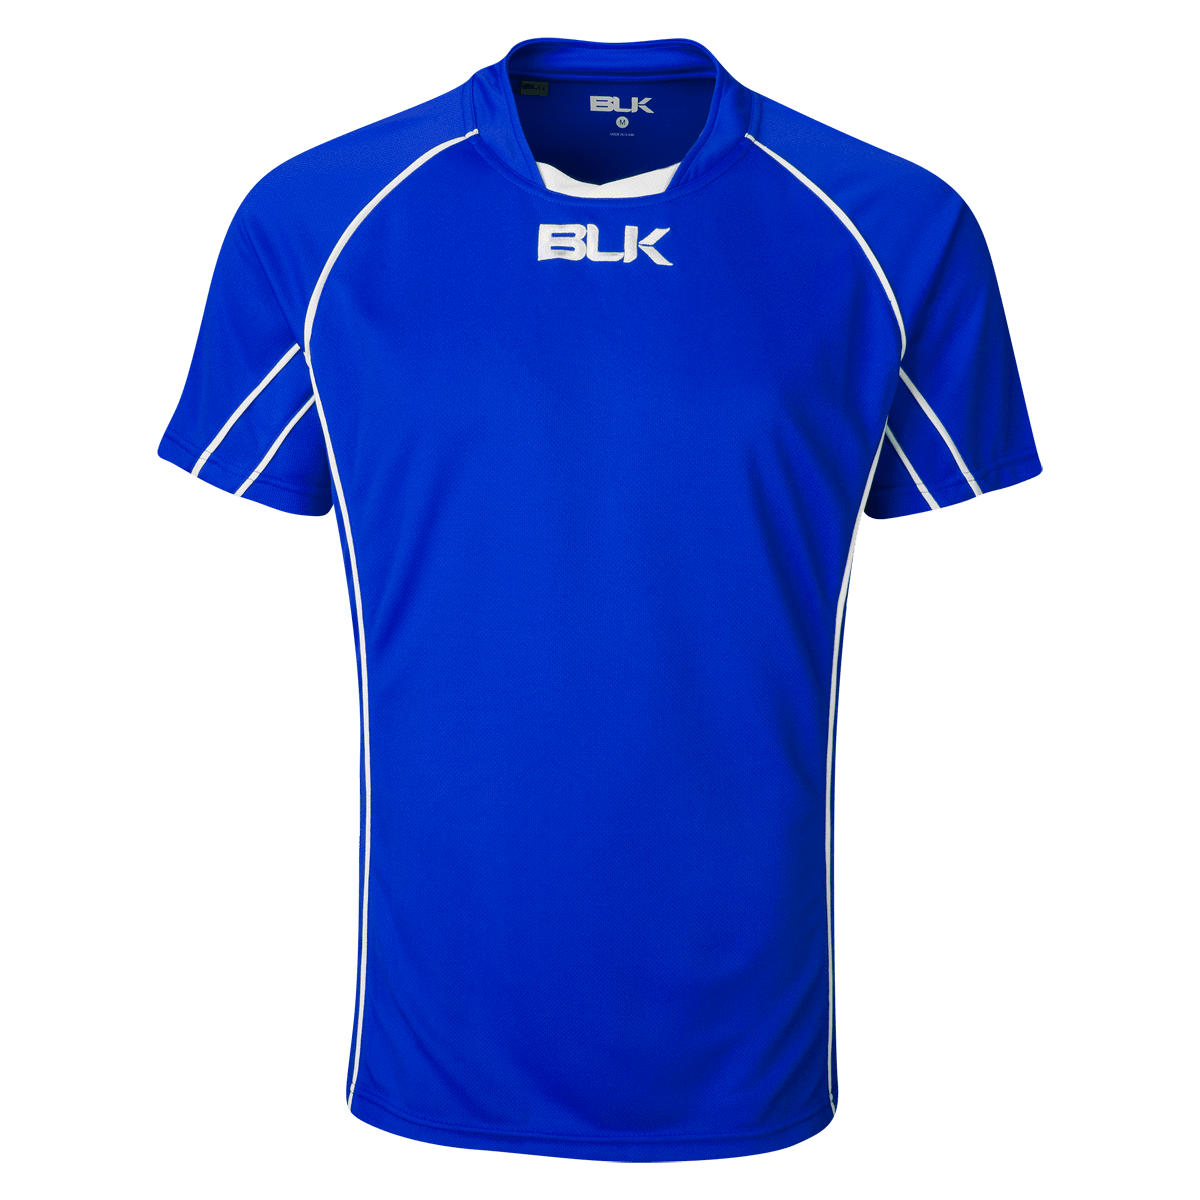 BLK Royal Youth Icon Rugby Jersey